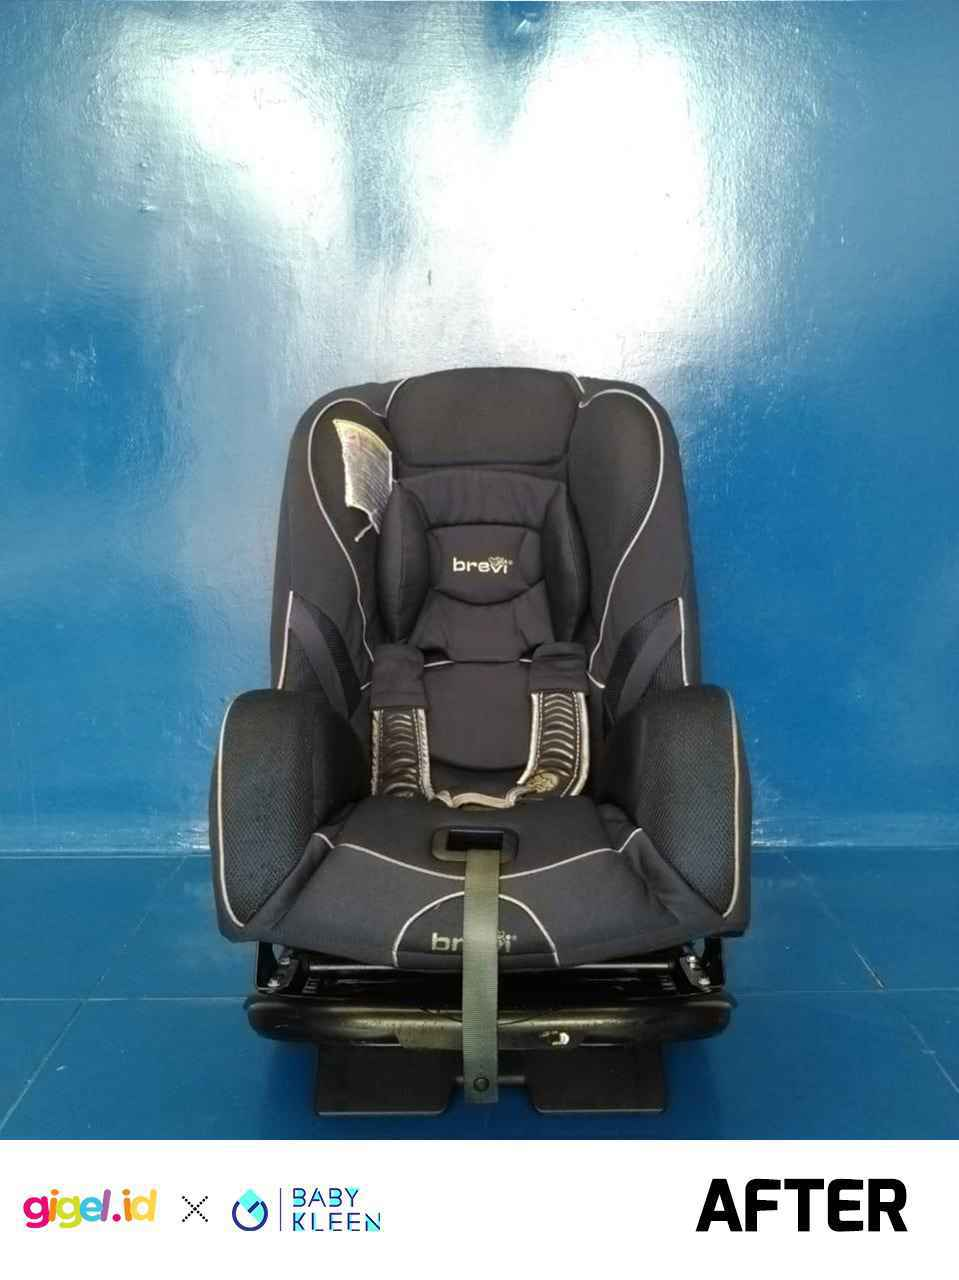 GIGEL.ID x Baby Kleen Laundry Car Seat - 3